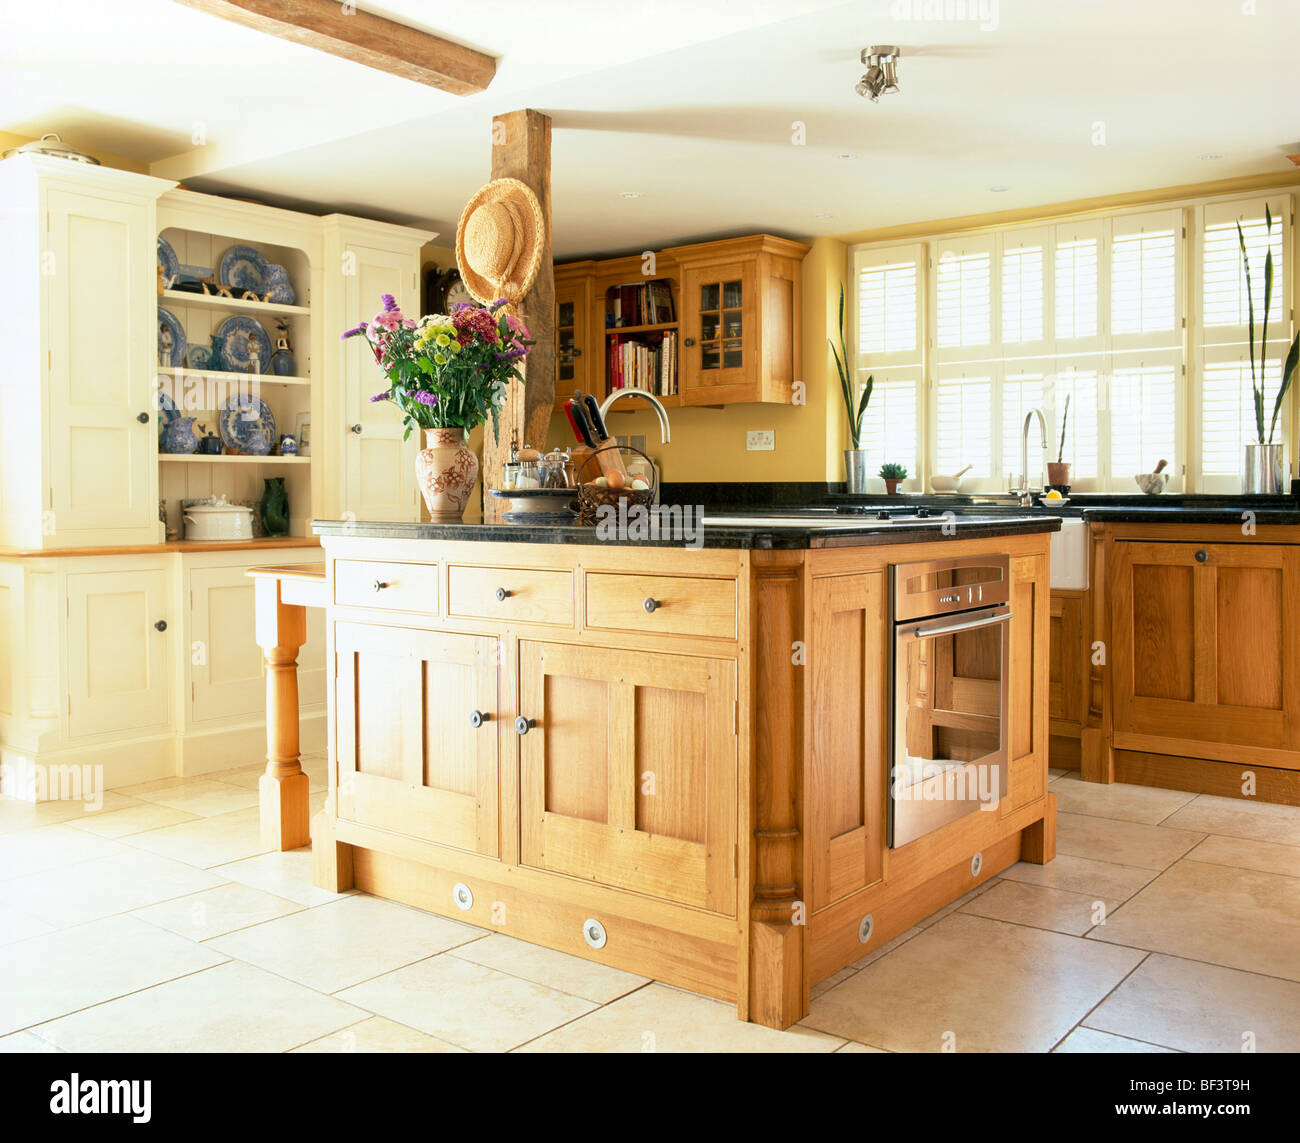 Limestone Flooring Kitchen Pale Wood Island Unit With Sink And Oven In Traditional Country